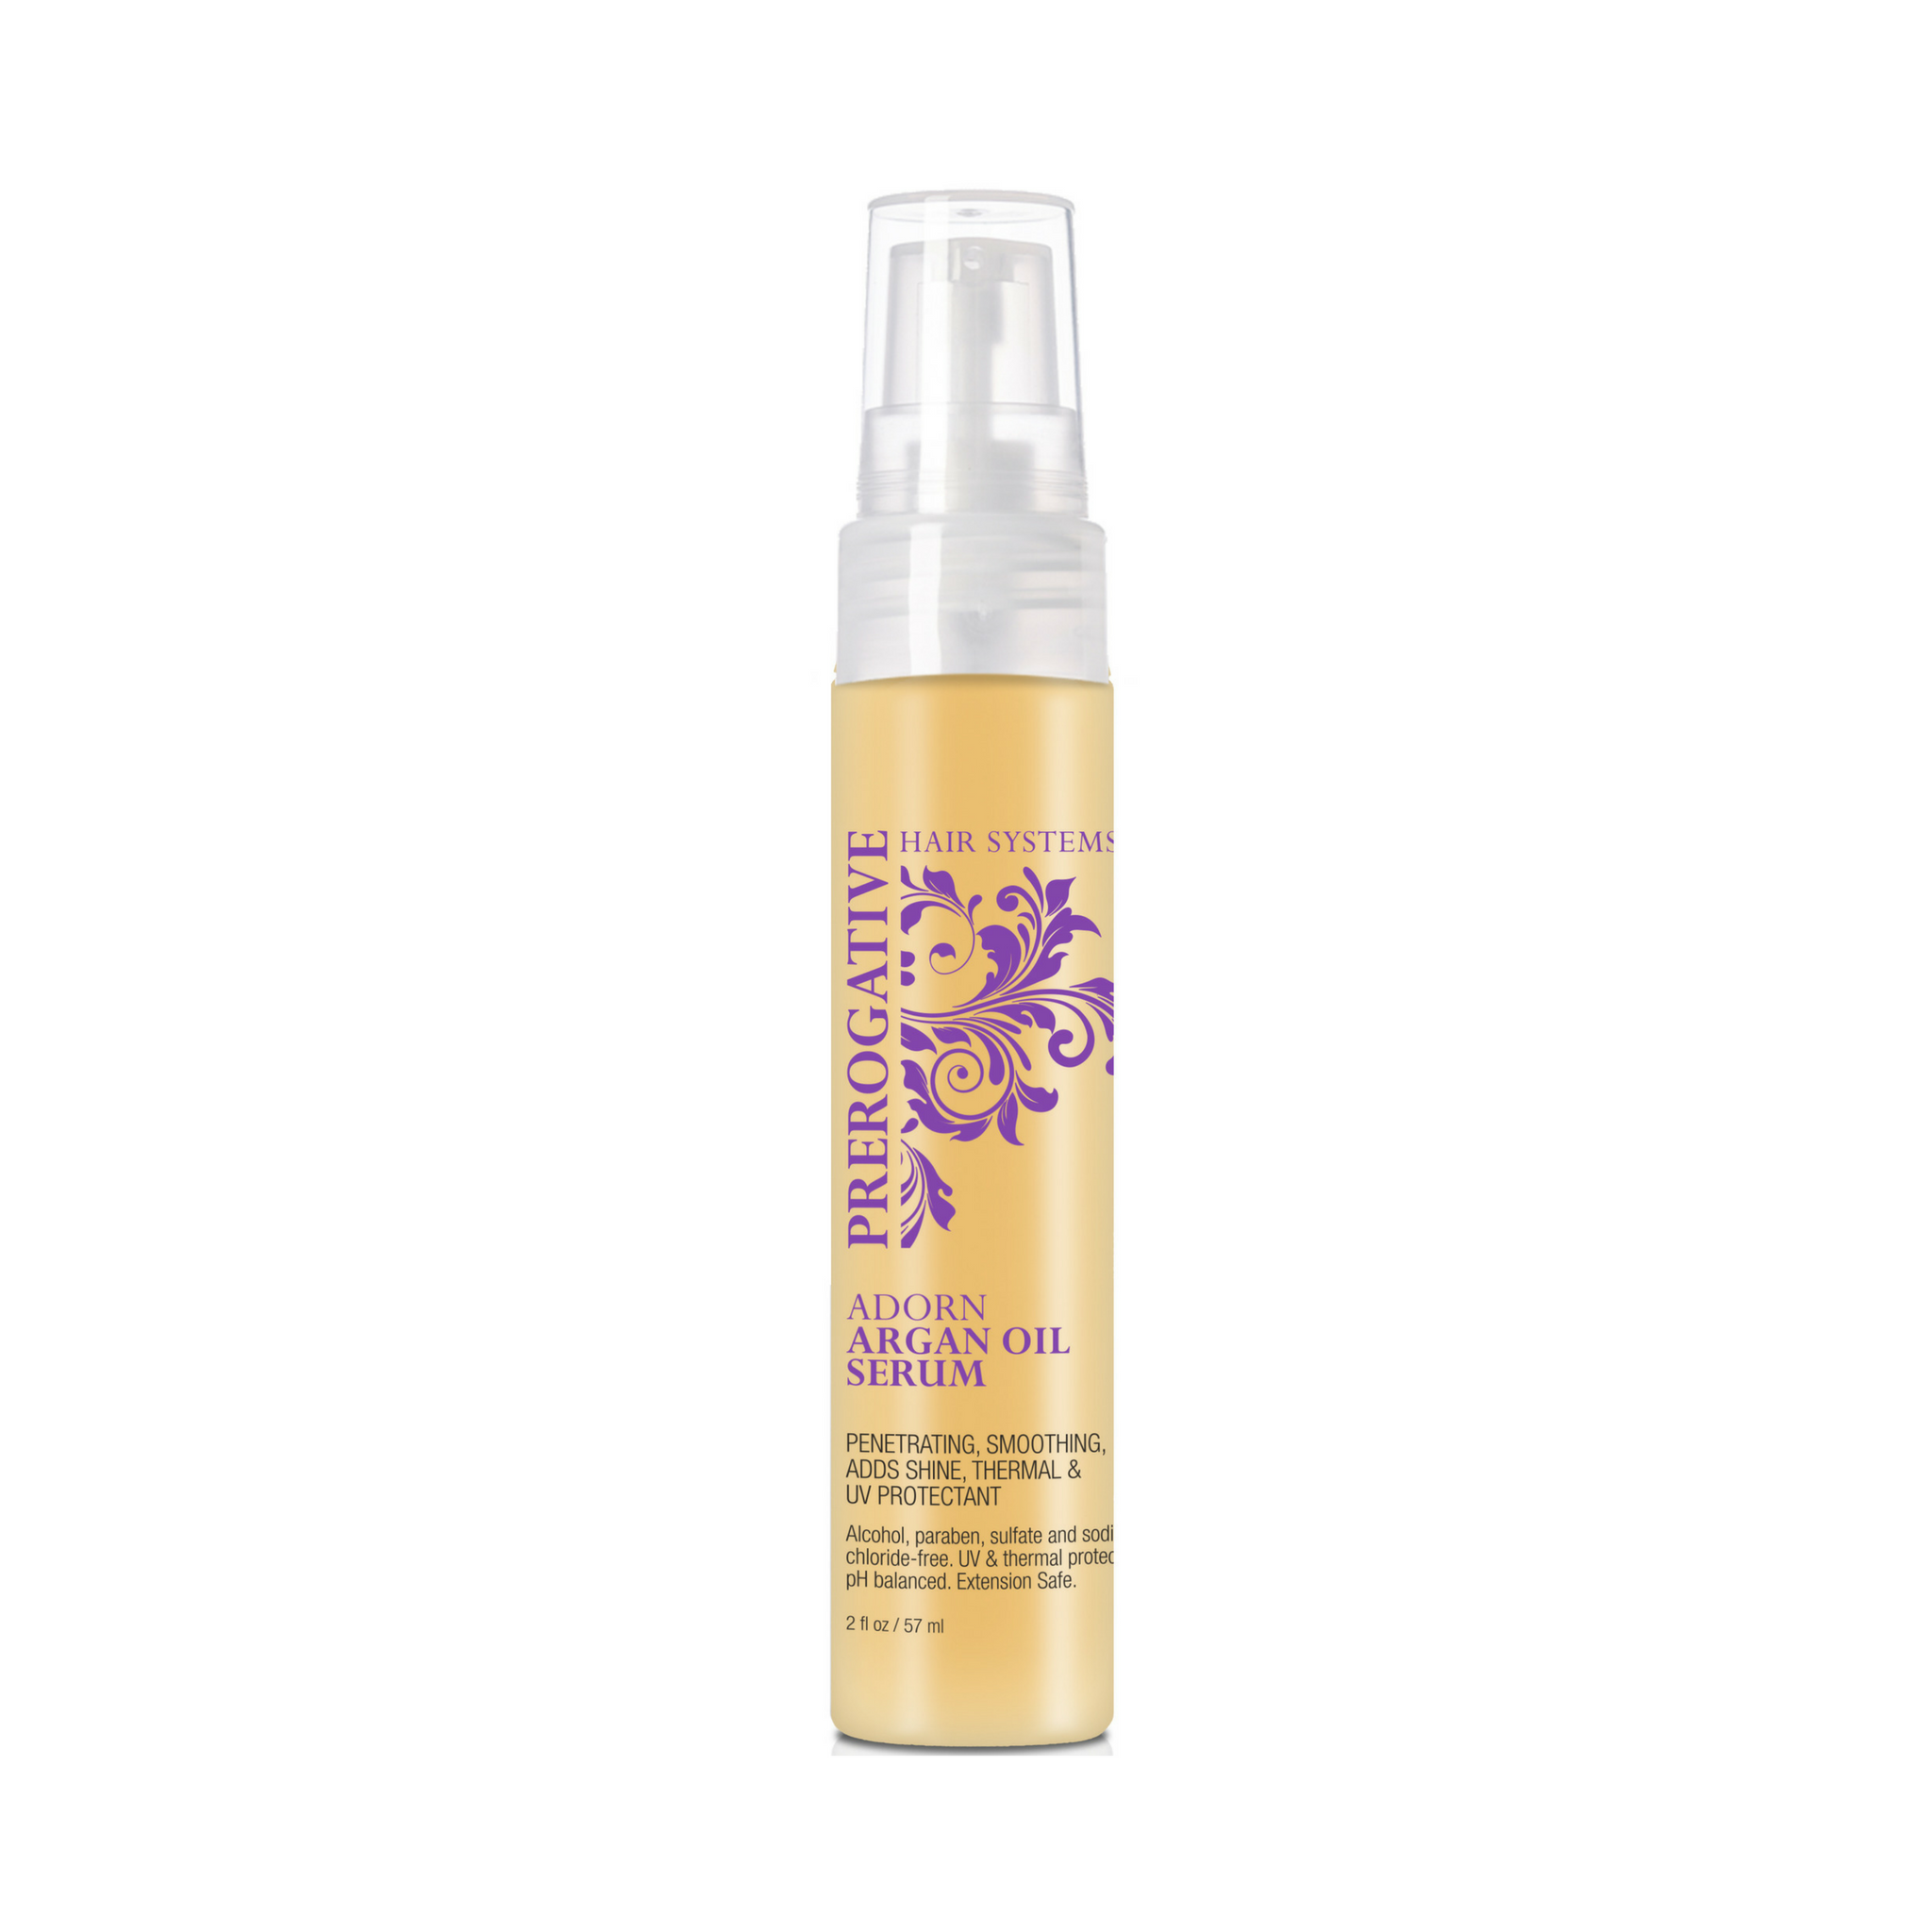 Adorn Argan Oil Serum Natural Hair Oil Tony Crystal Labs